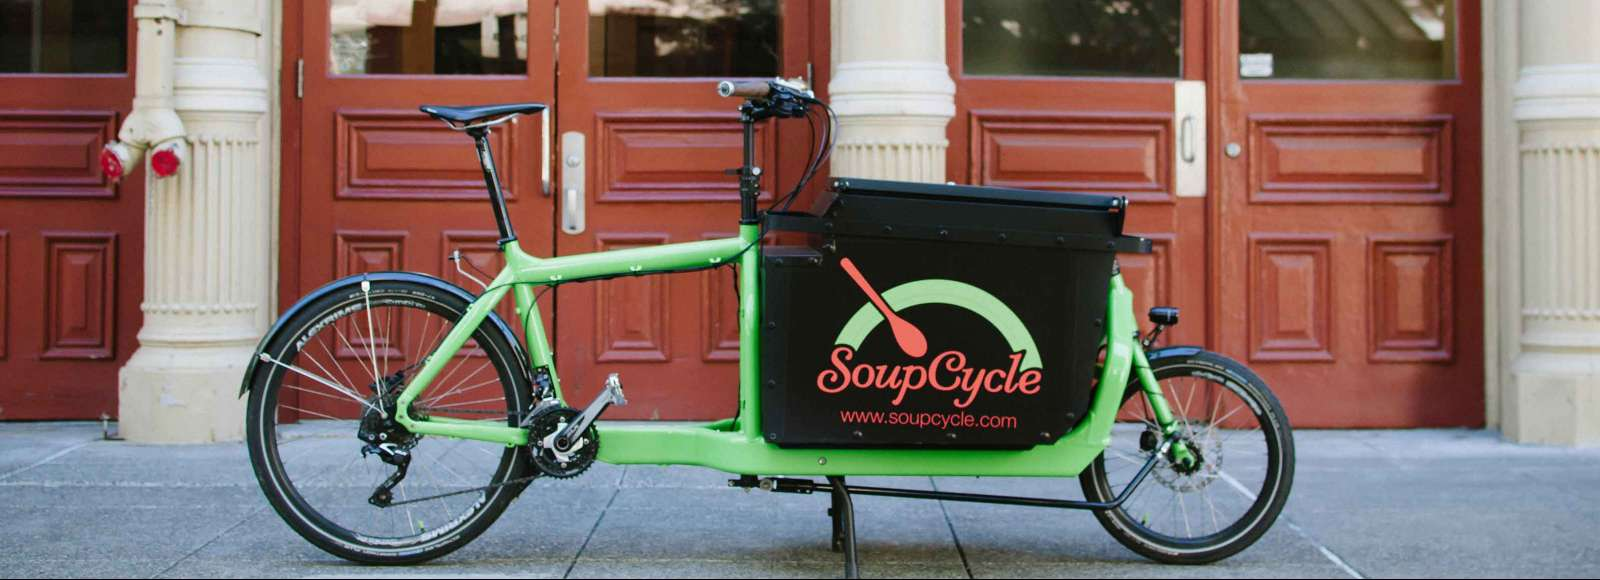 Delivery bicycle that reads